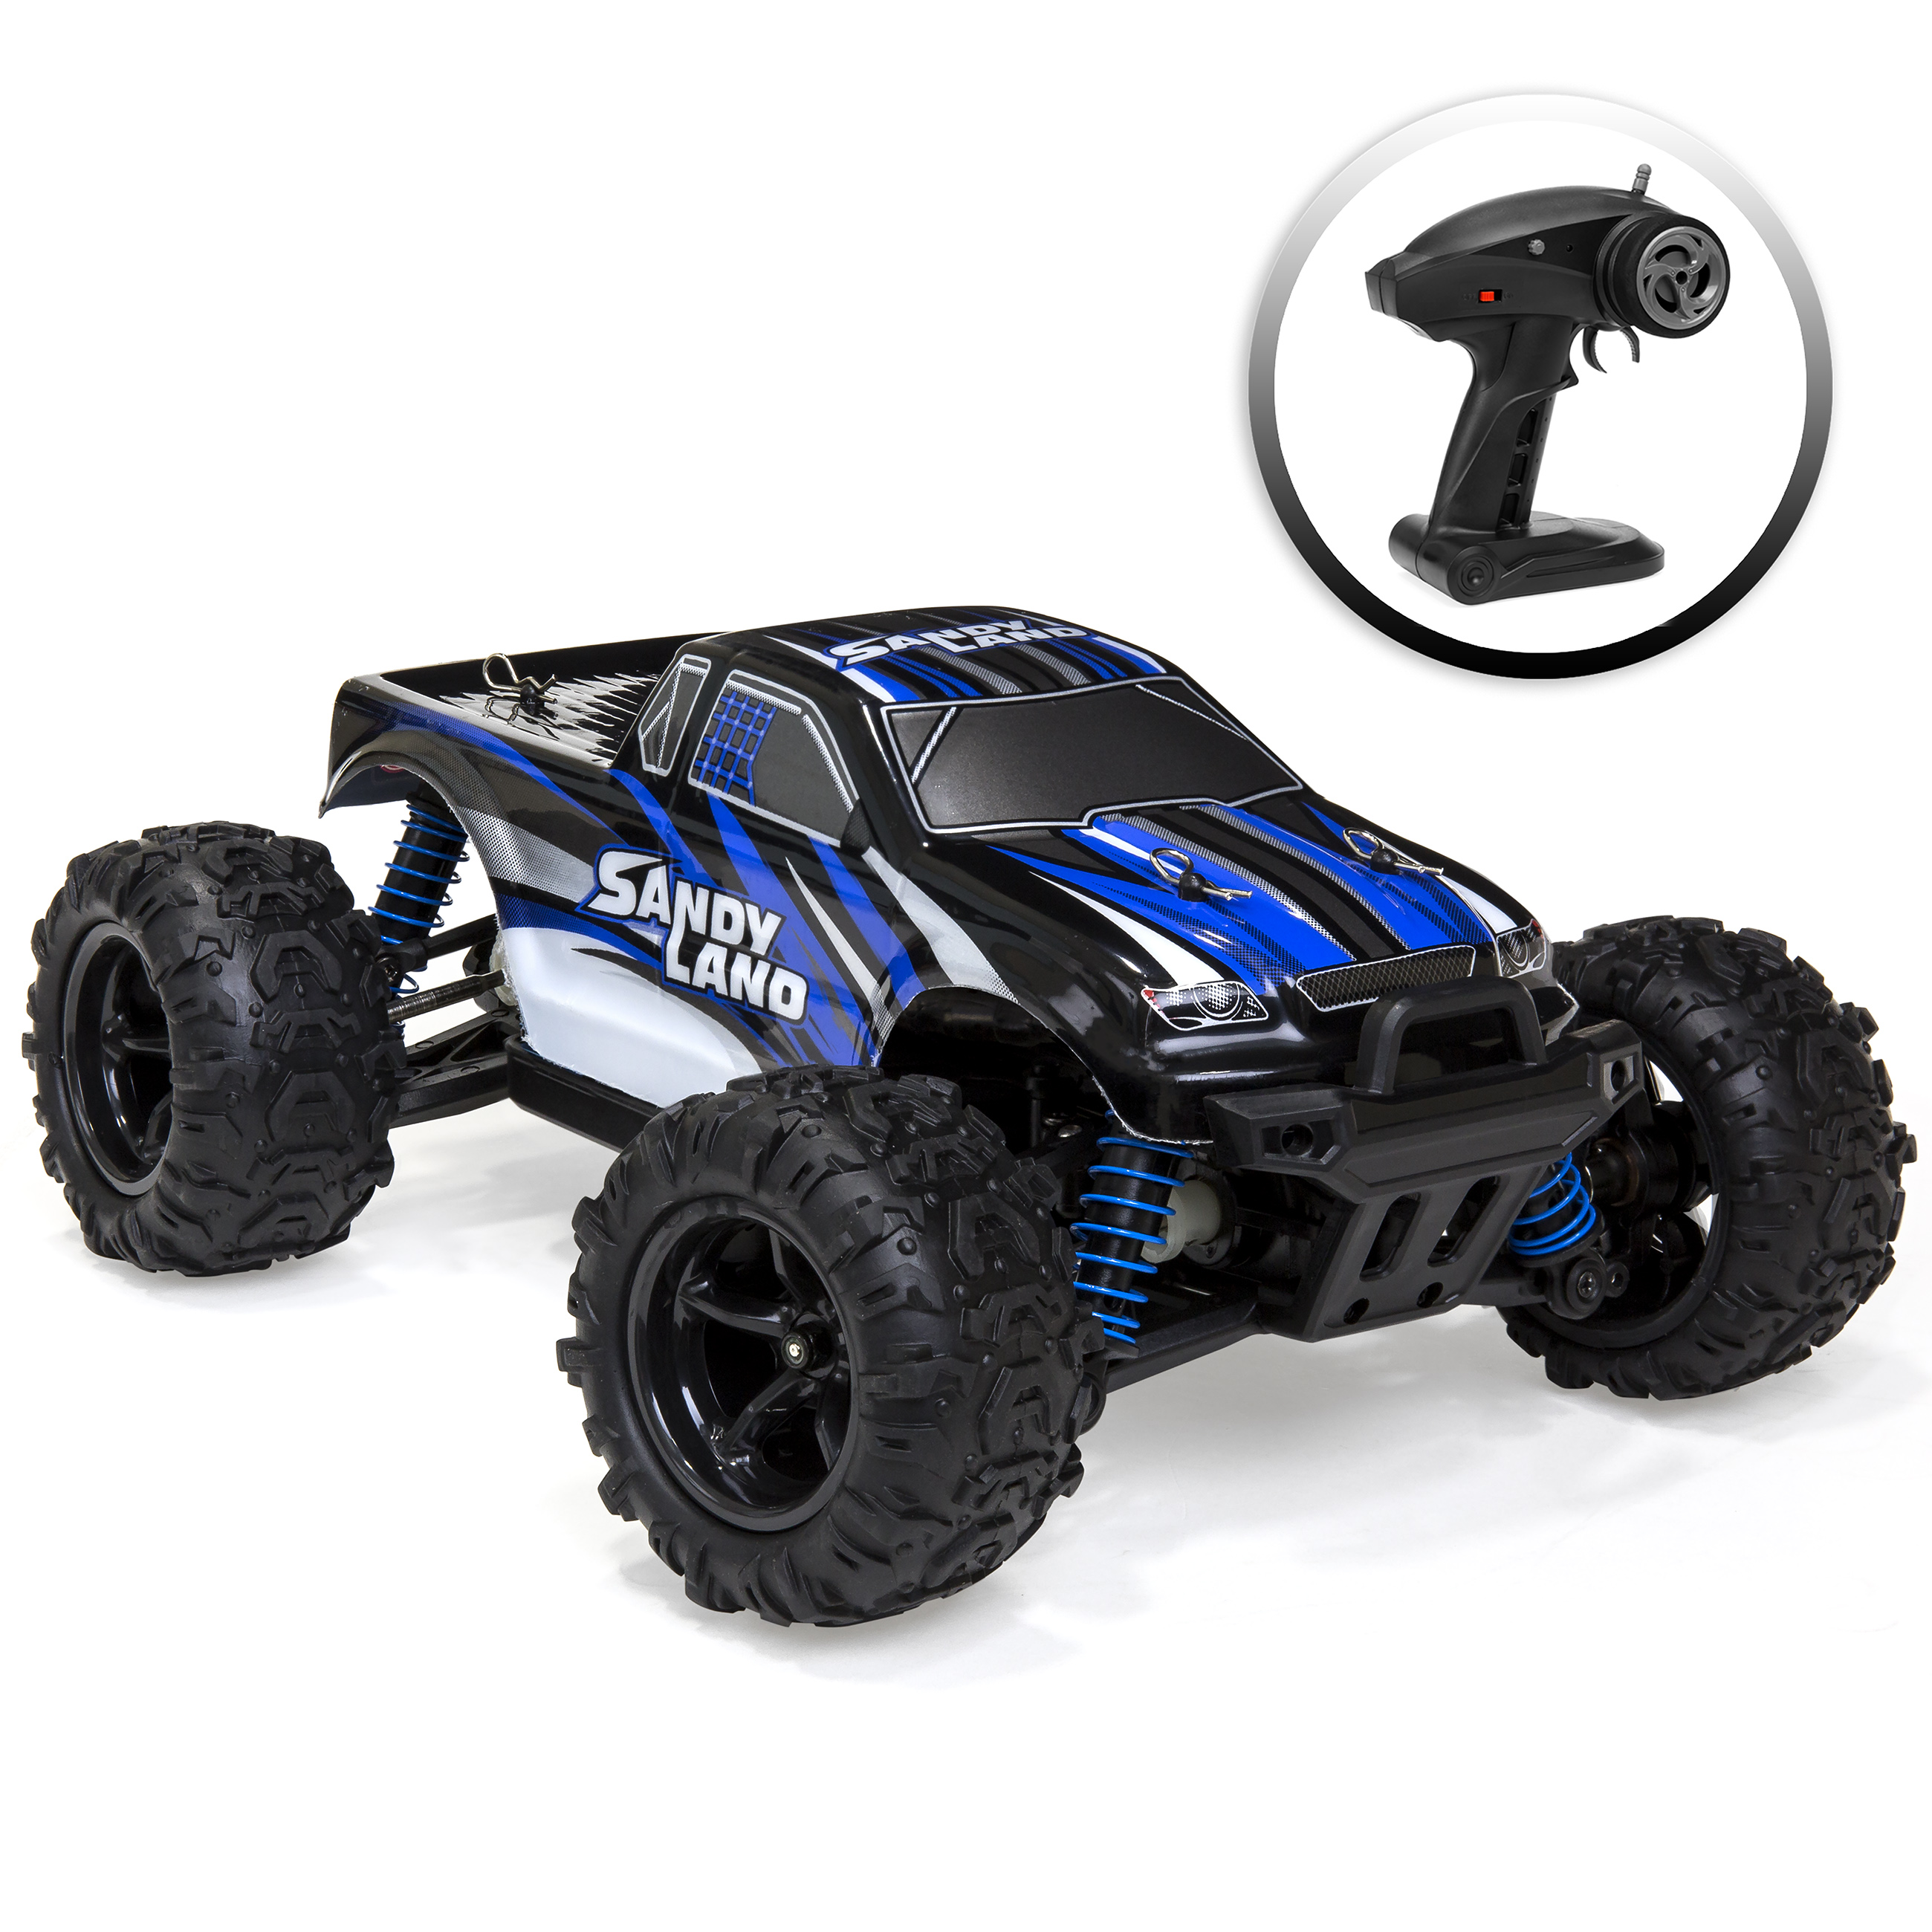 Best Choice Products Kids Off-Road Monster Truck Toy RC Remote Control Car (Blue)